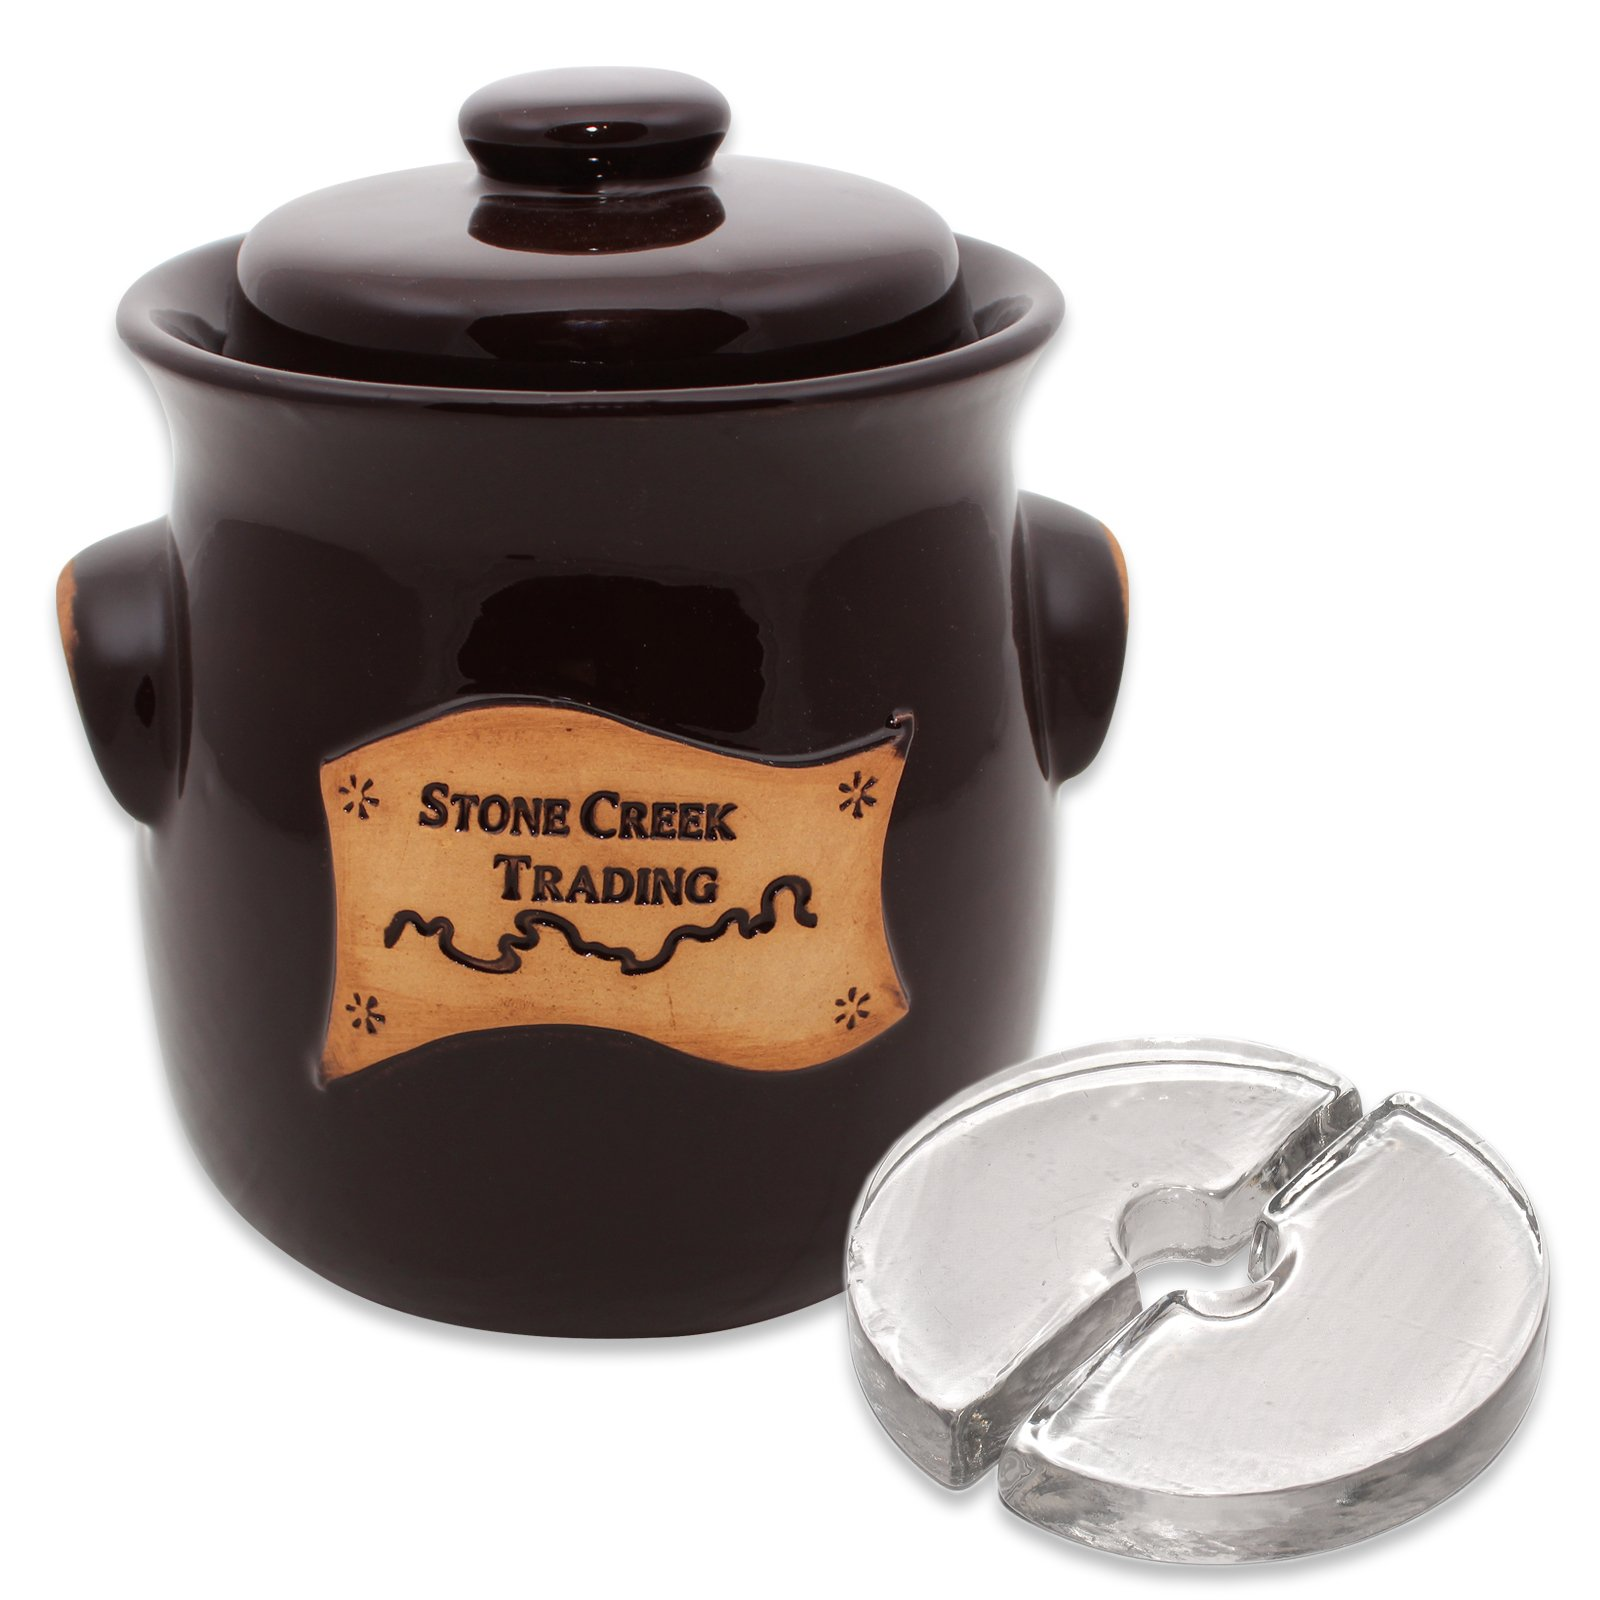 Stone Creek Trading 2.5L Fermenting Crock with Weights (Stone Creek Trading)